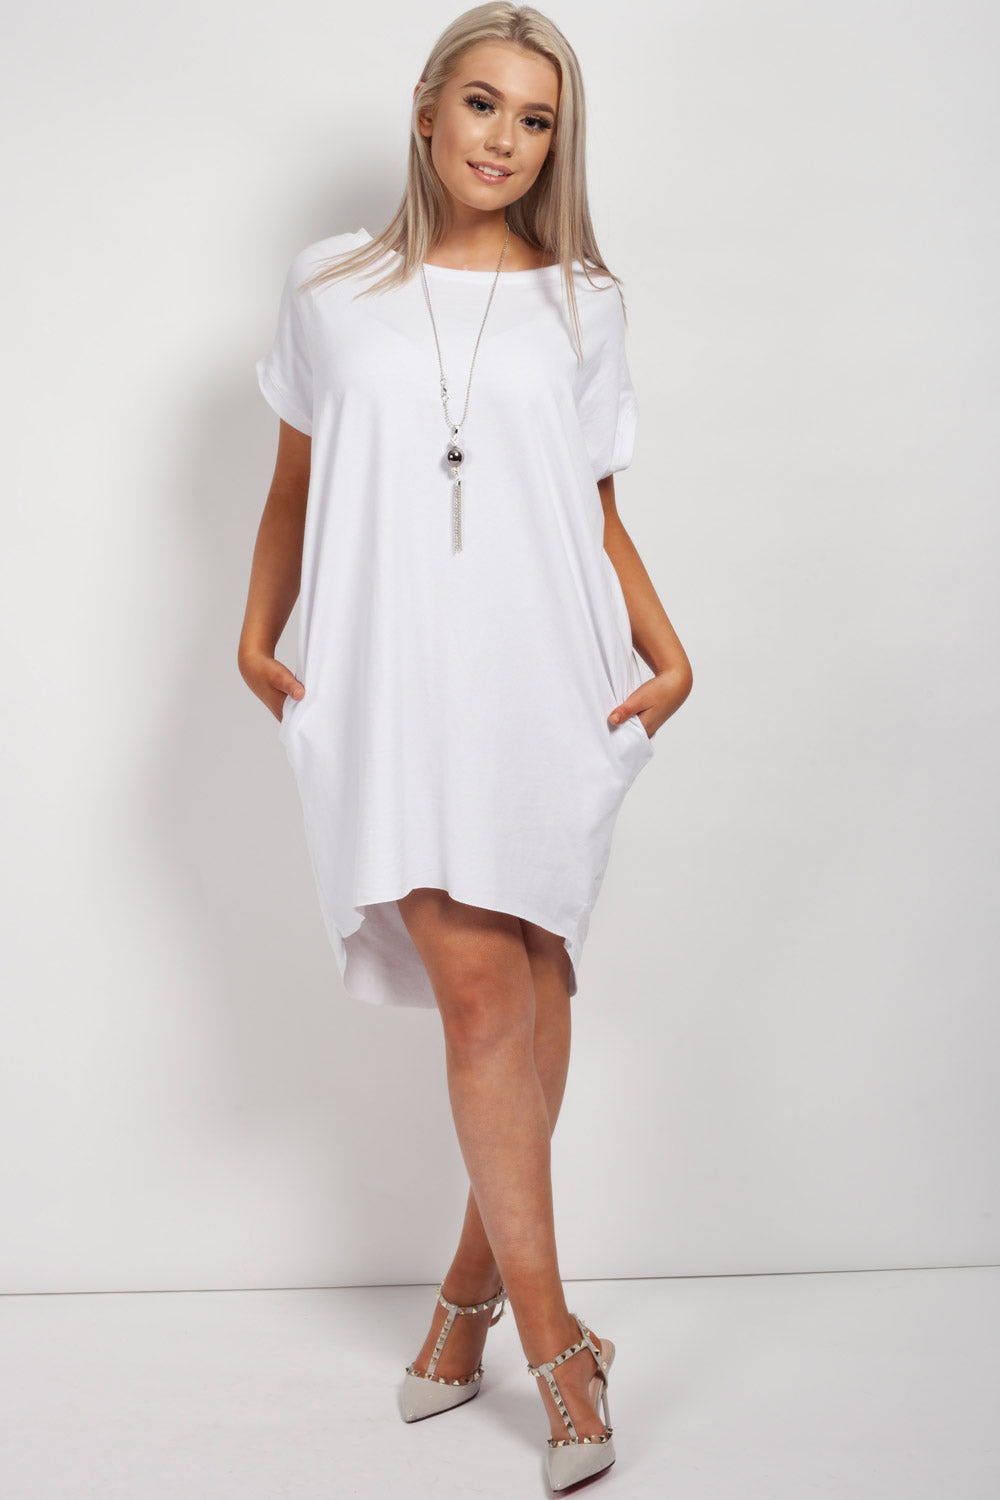 white oversized top womens